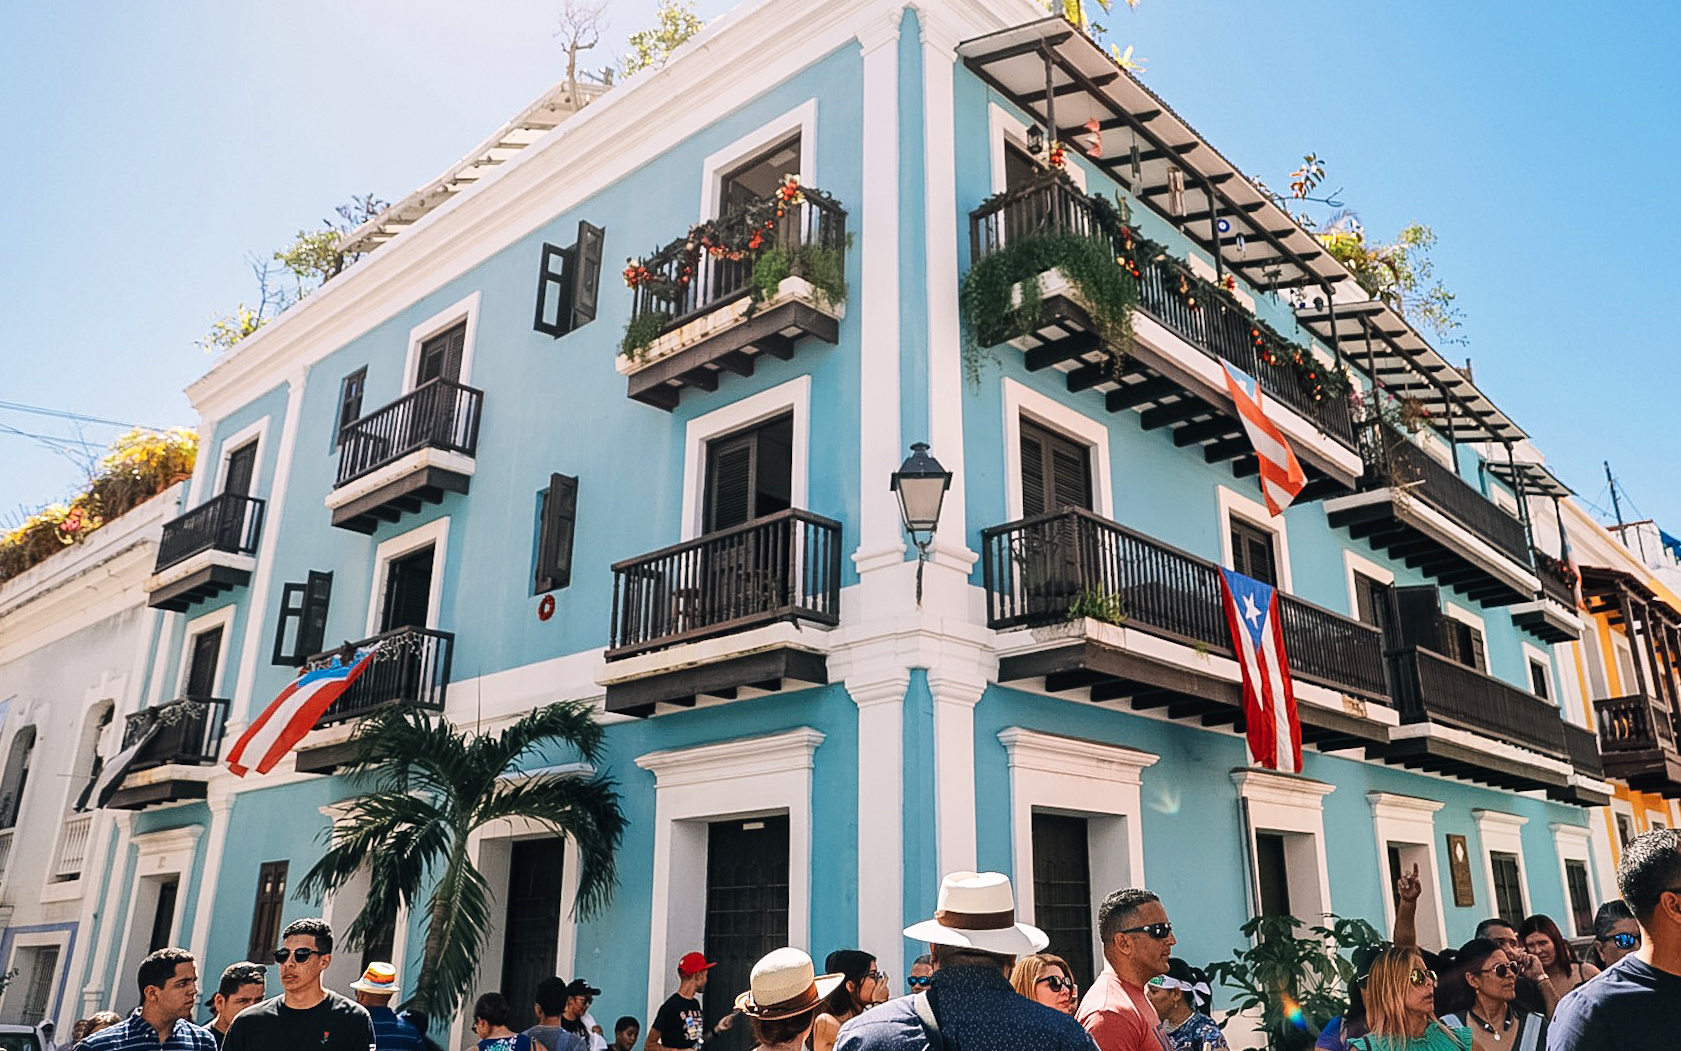 Holiday season in Old San Juan.